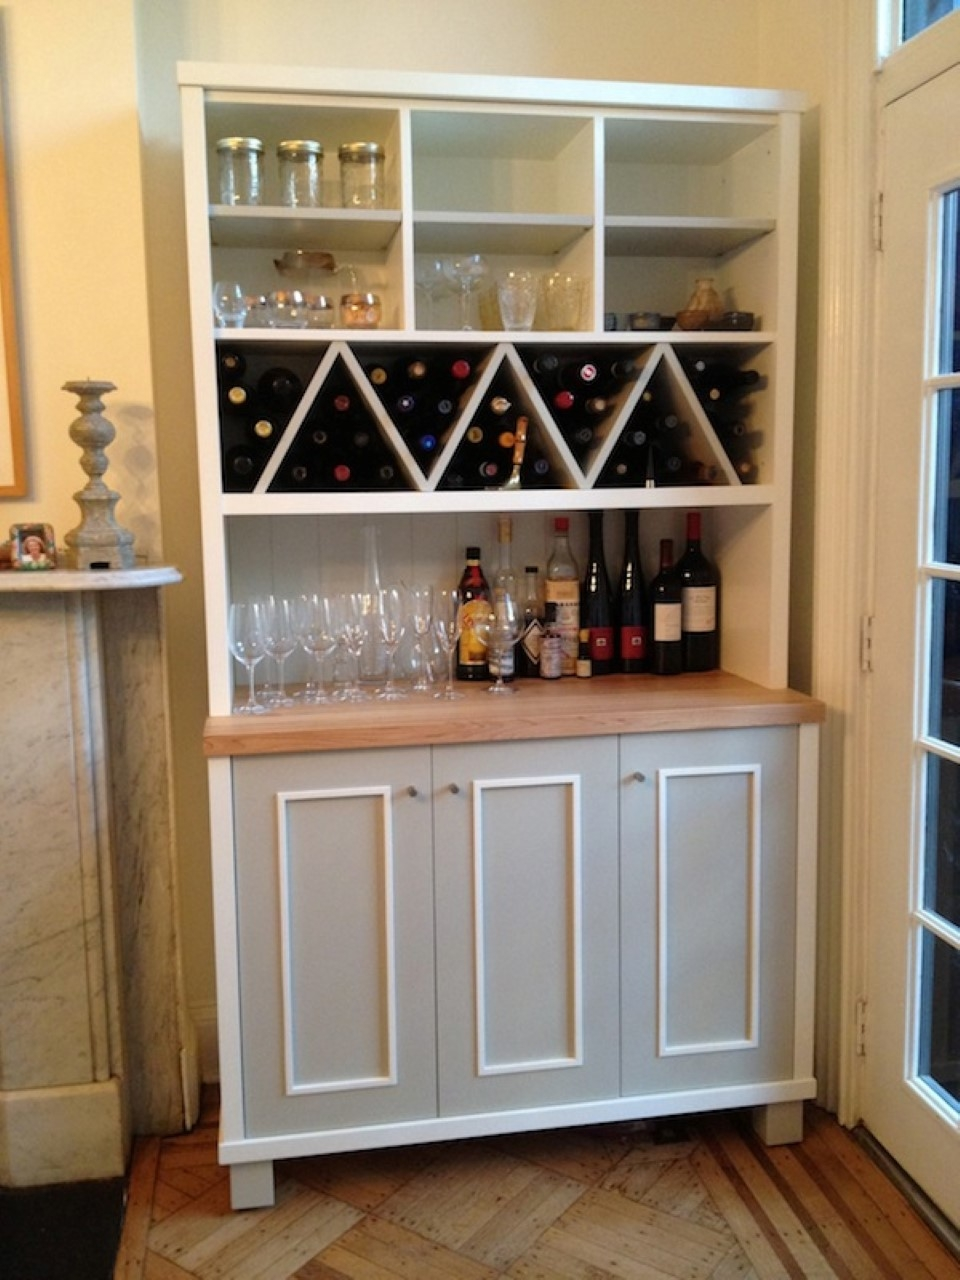 Zigzag Shaped Wine Racks With Multi Purposes Kitchen Wall Storage With Regard To Storage Racks For Kitchen Cupboards (Image 25 of 25)